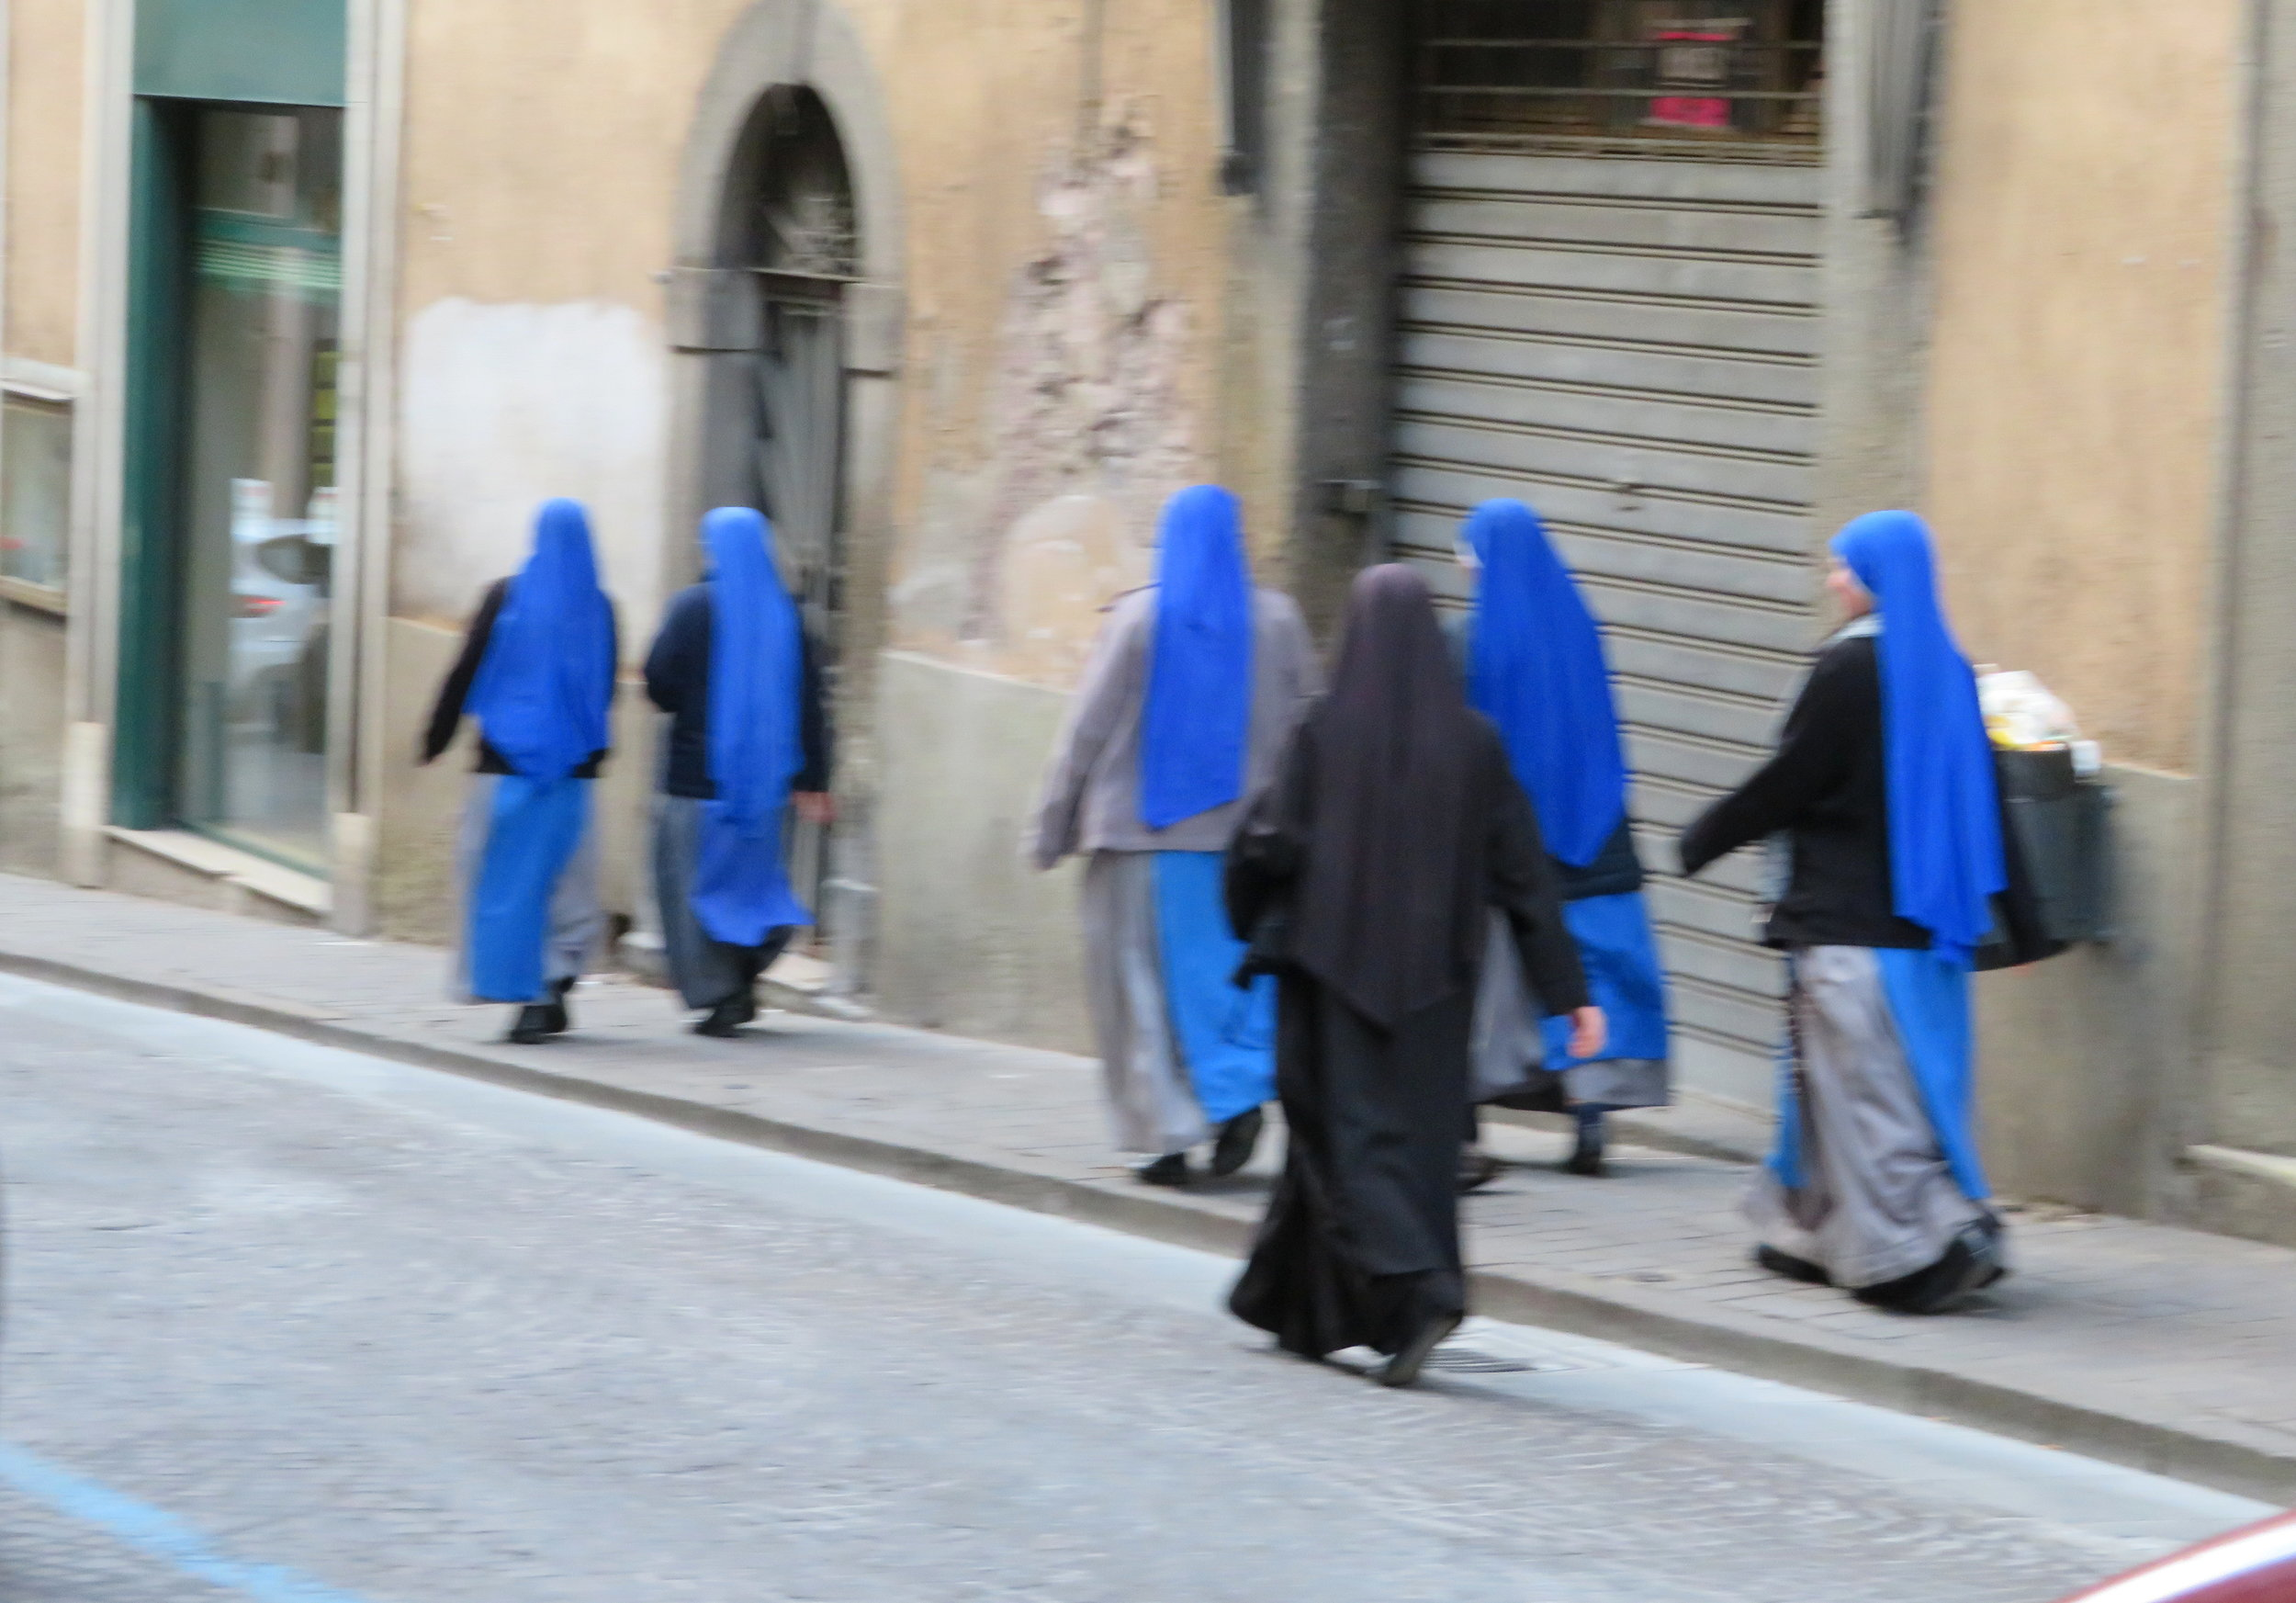 A flock of novices heading to church in Viterbo as we head out in search of our pilgrim stamp.